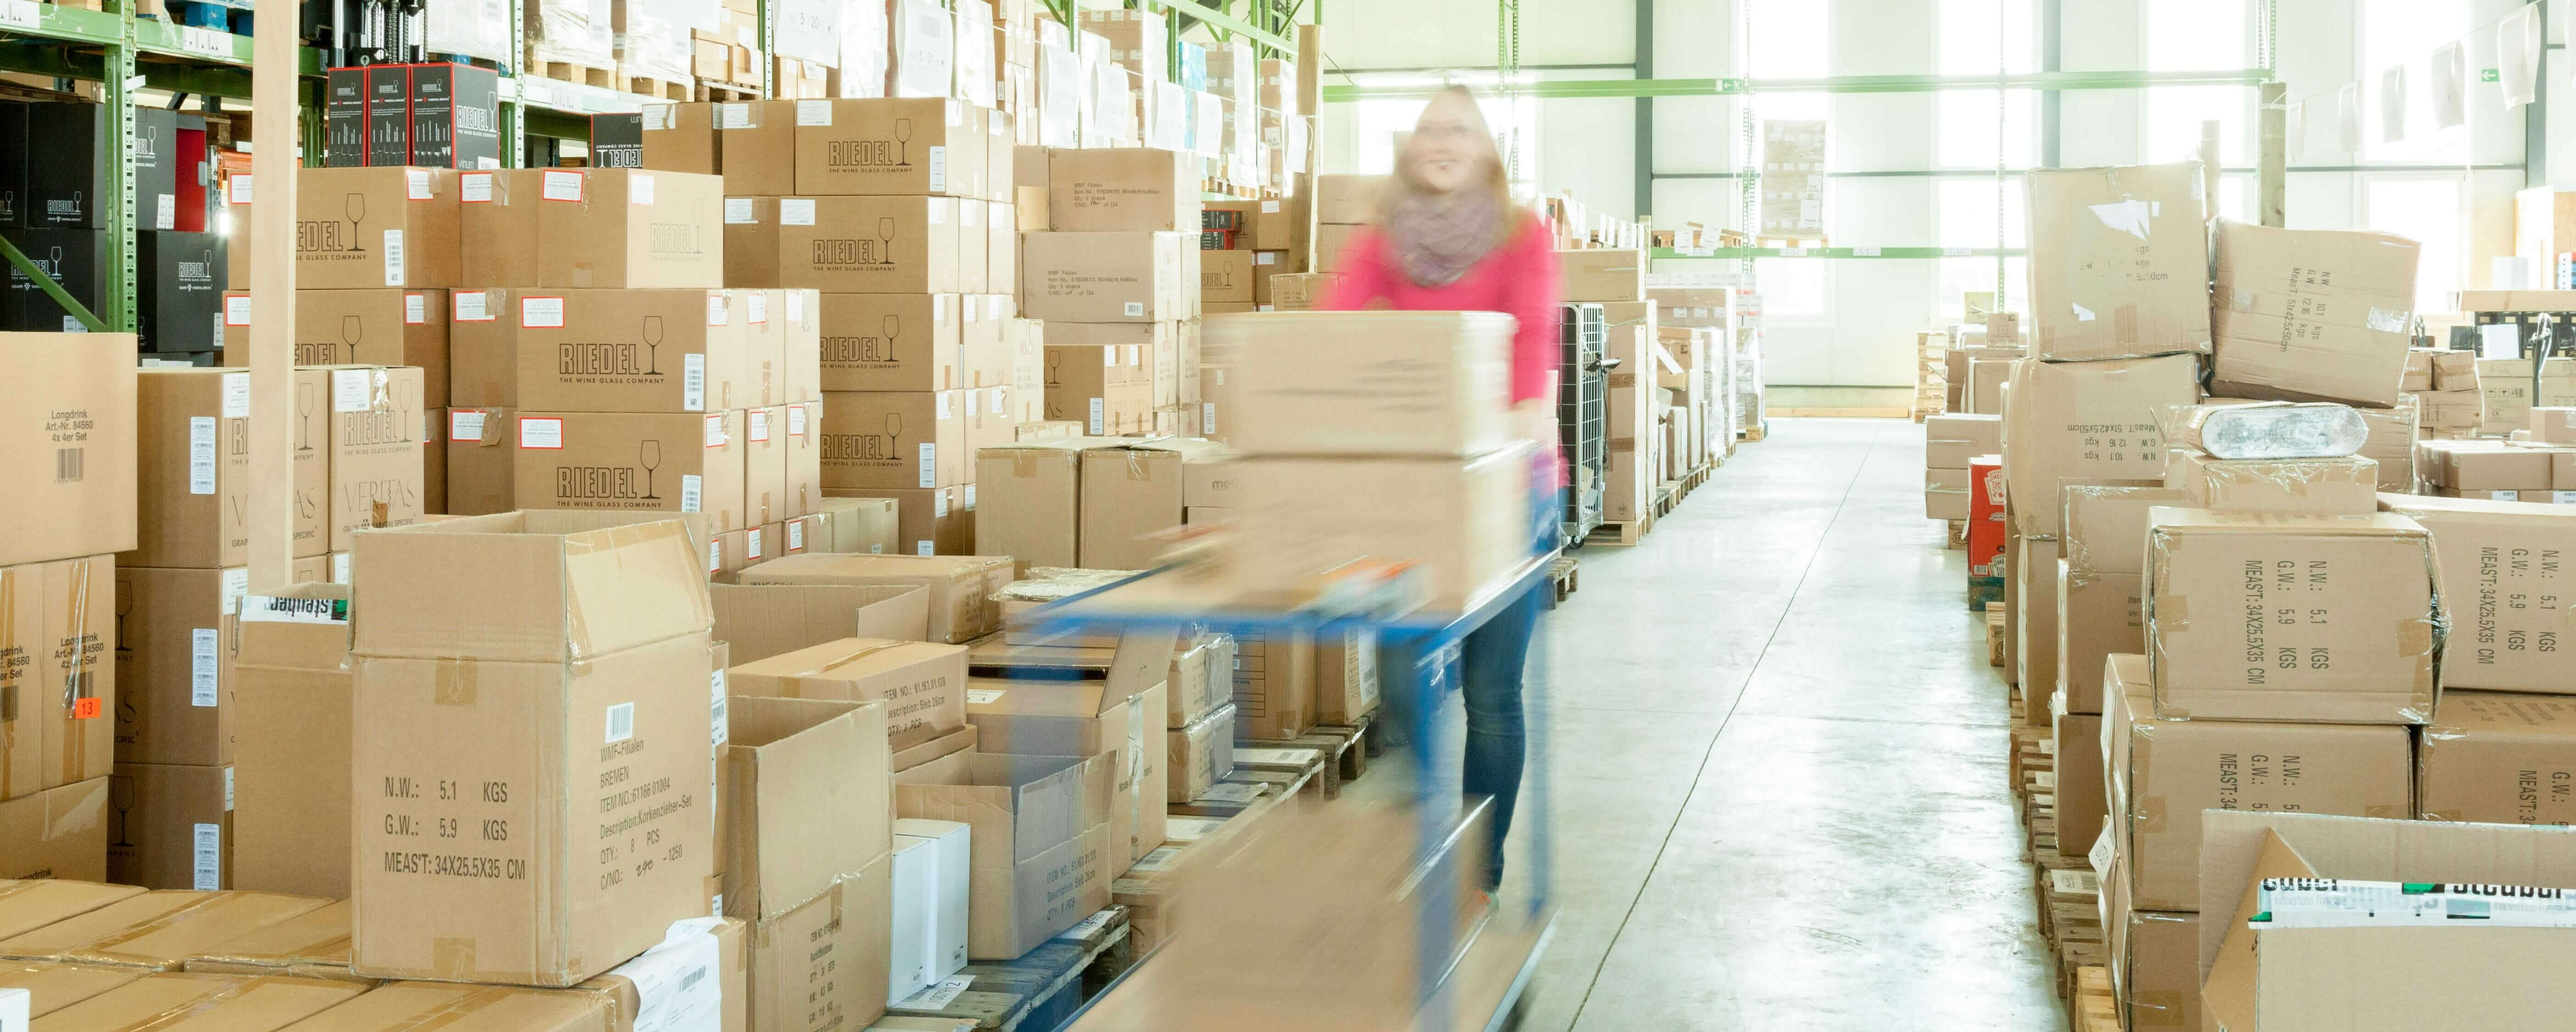 Online Shop Lager Fulfillment VersandDienst